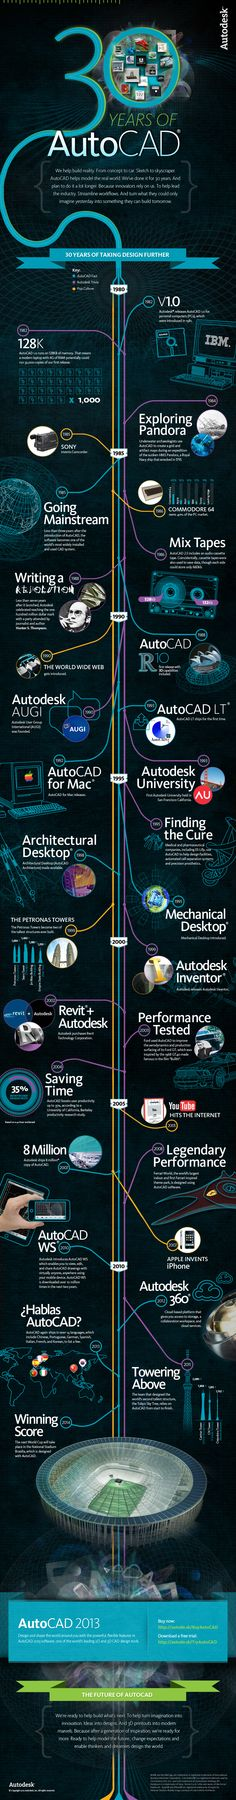 30 years of AutoCAD-infographic